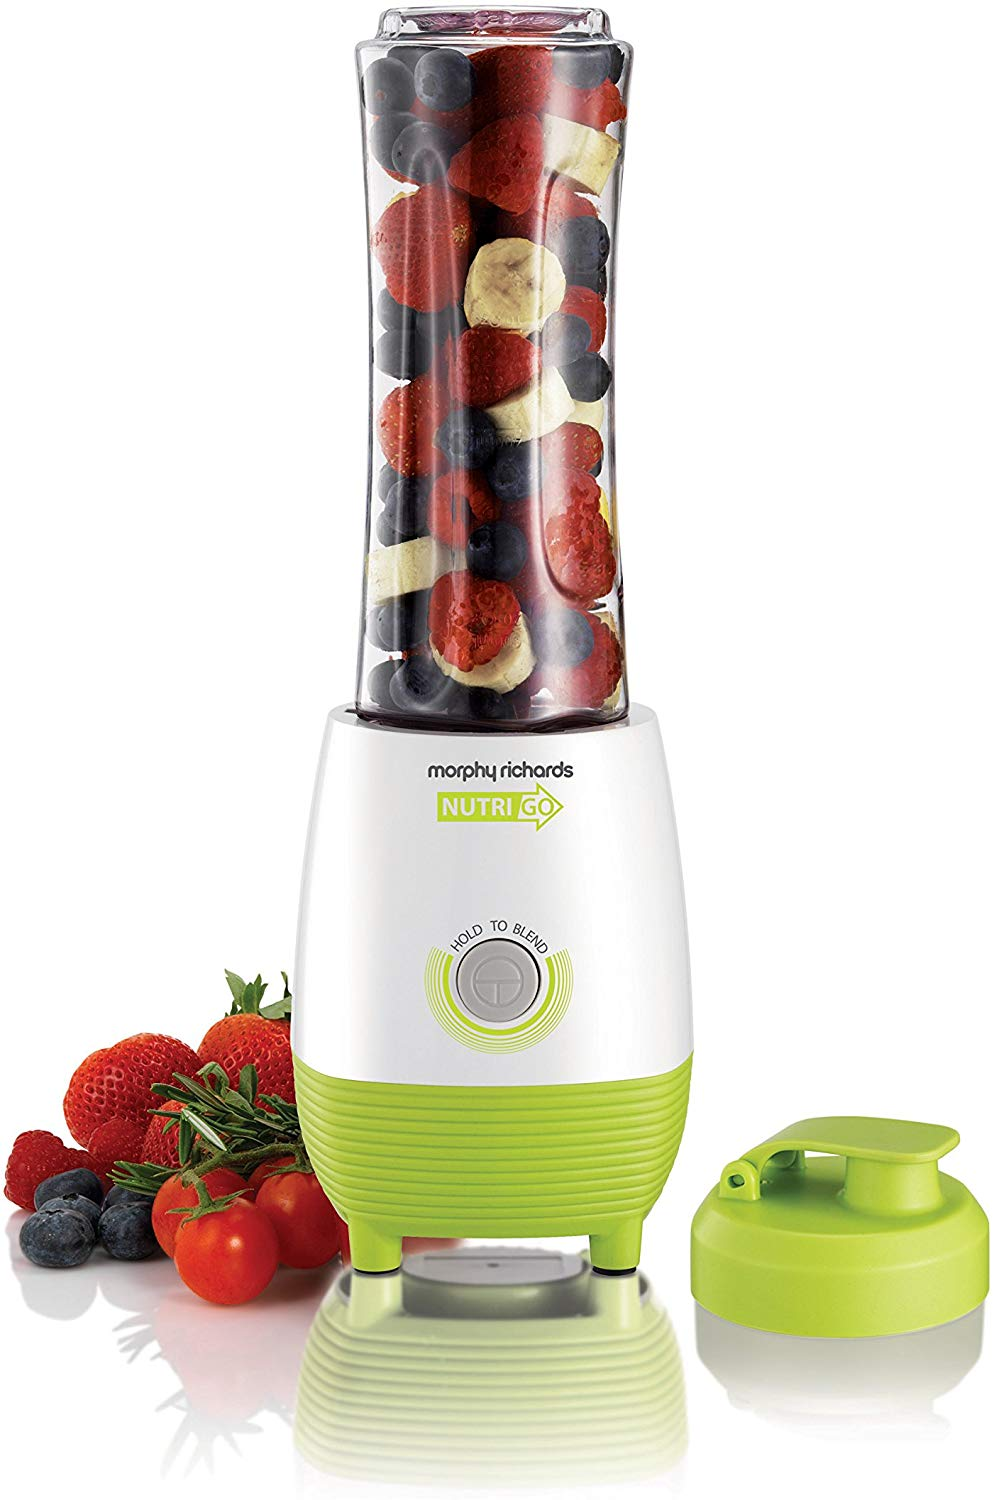 44% off Morphy Richards Nutrigo Blender with On The Go Beaker